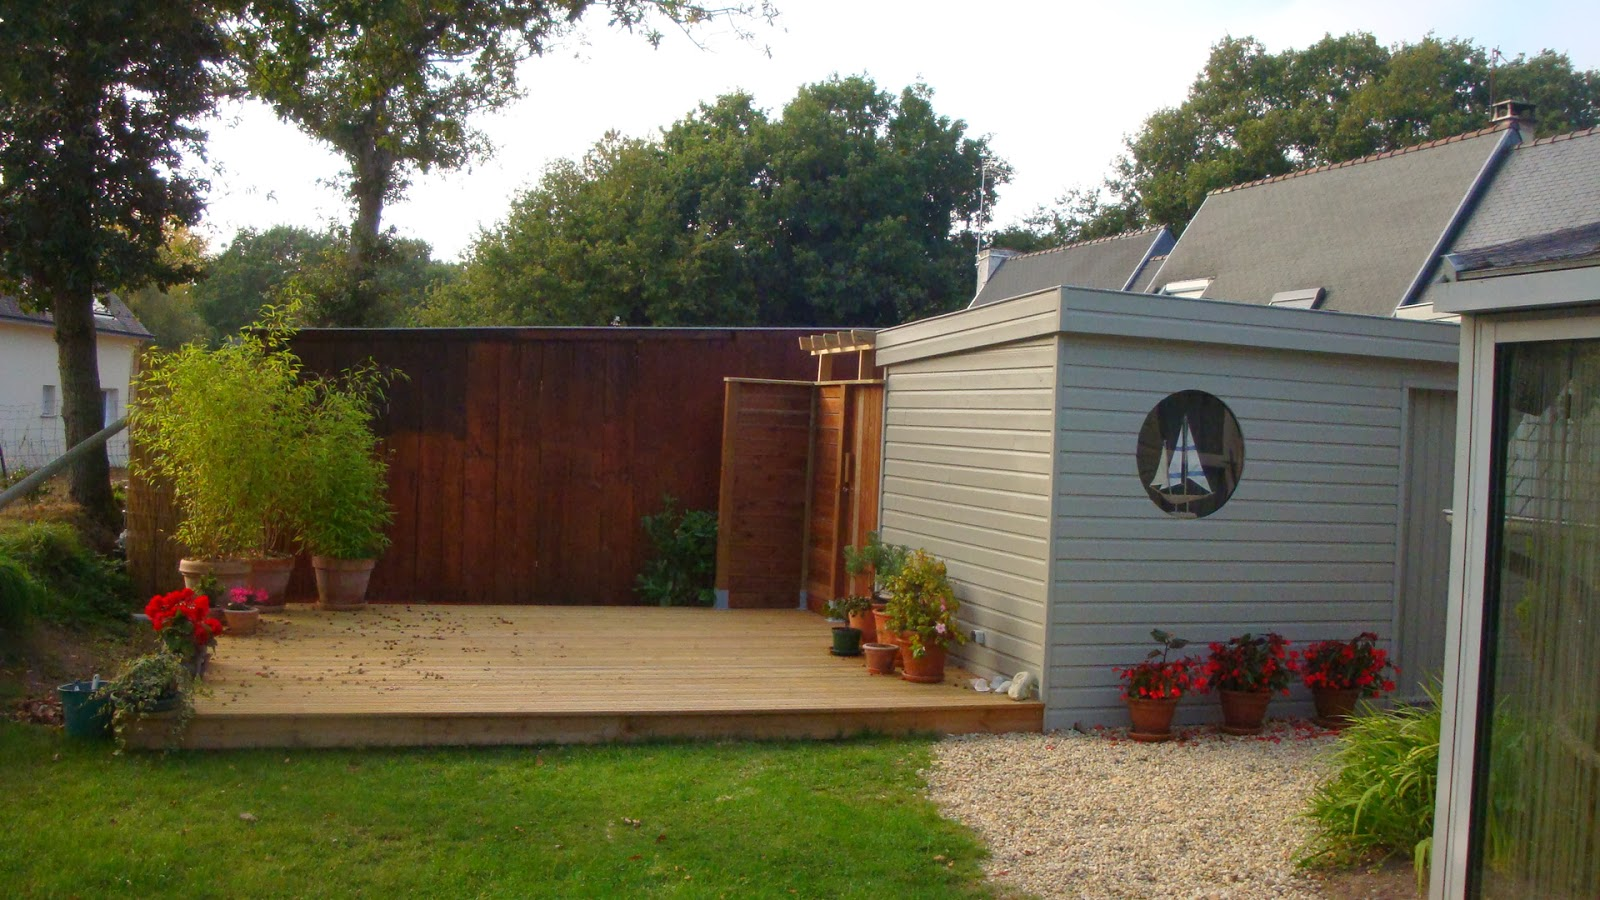 Michel le coz agencement d coration ext rieur car port for Abri exterieur jardin